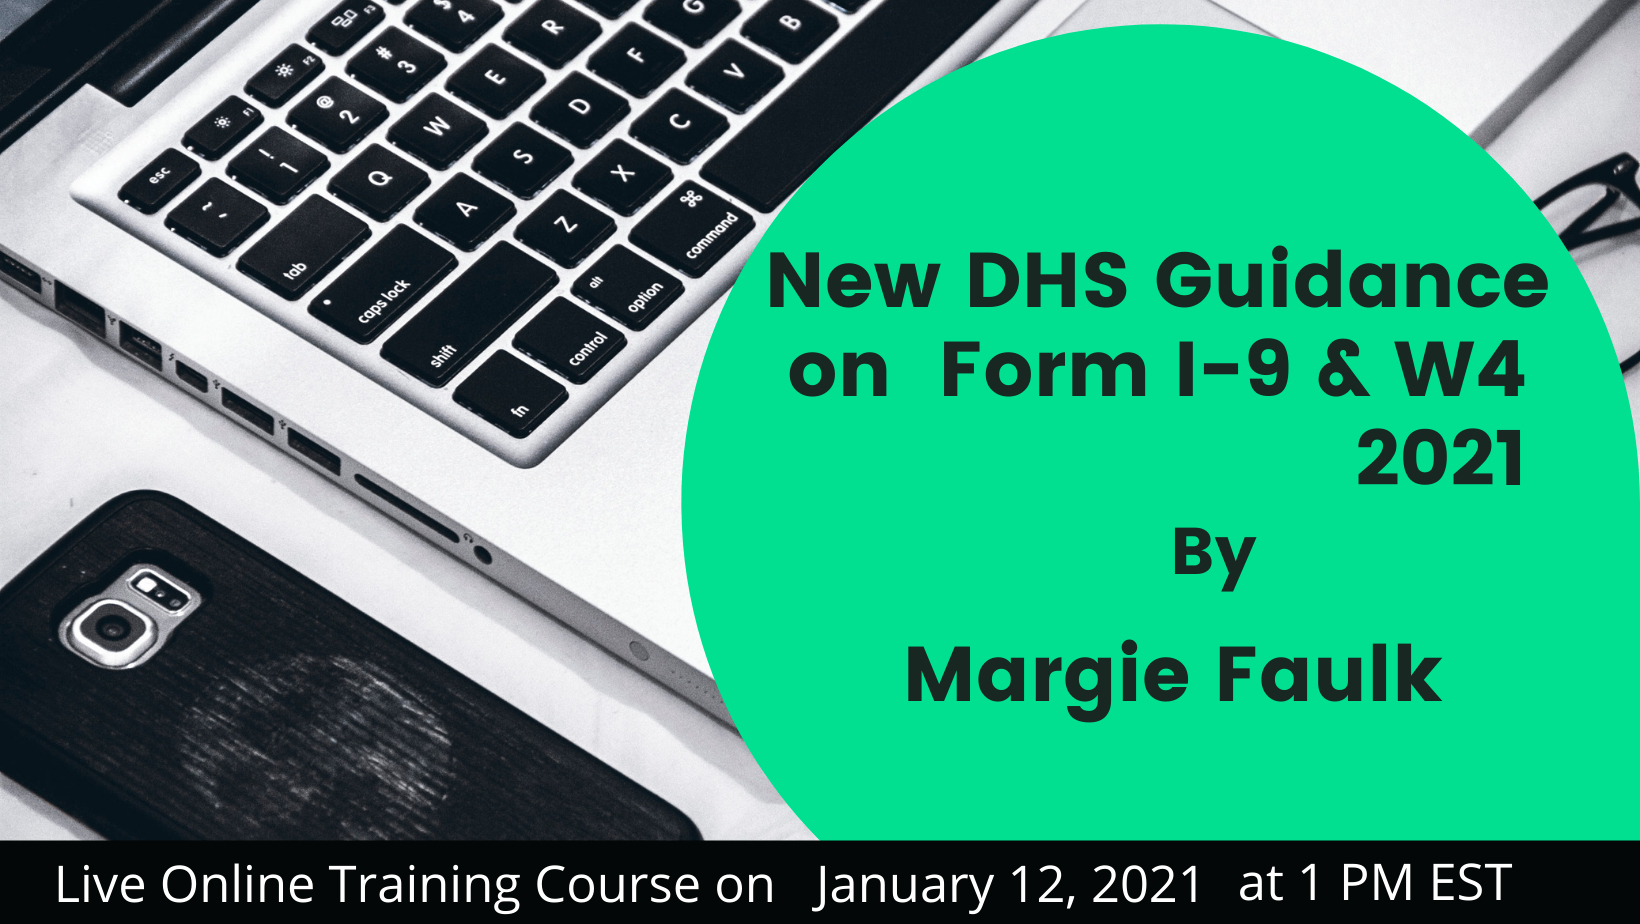 New Dhs Guidance On Completing The Form I-9 And W4